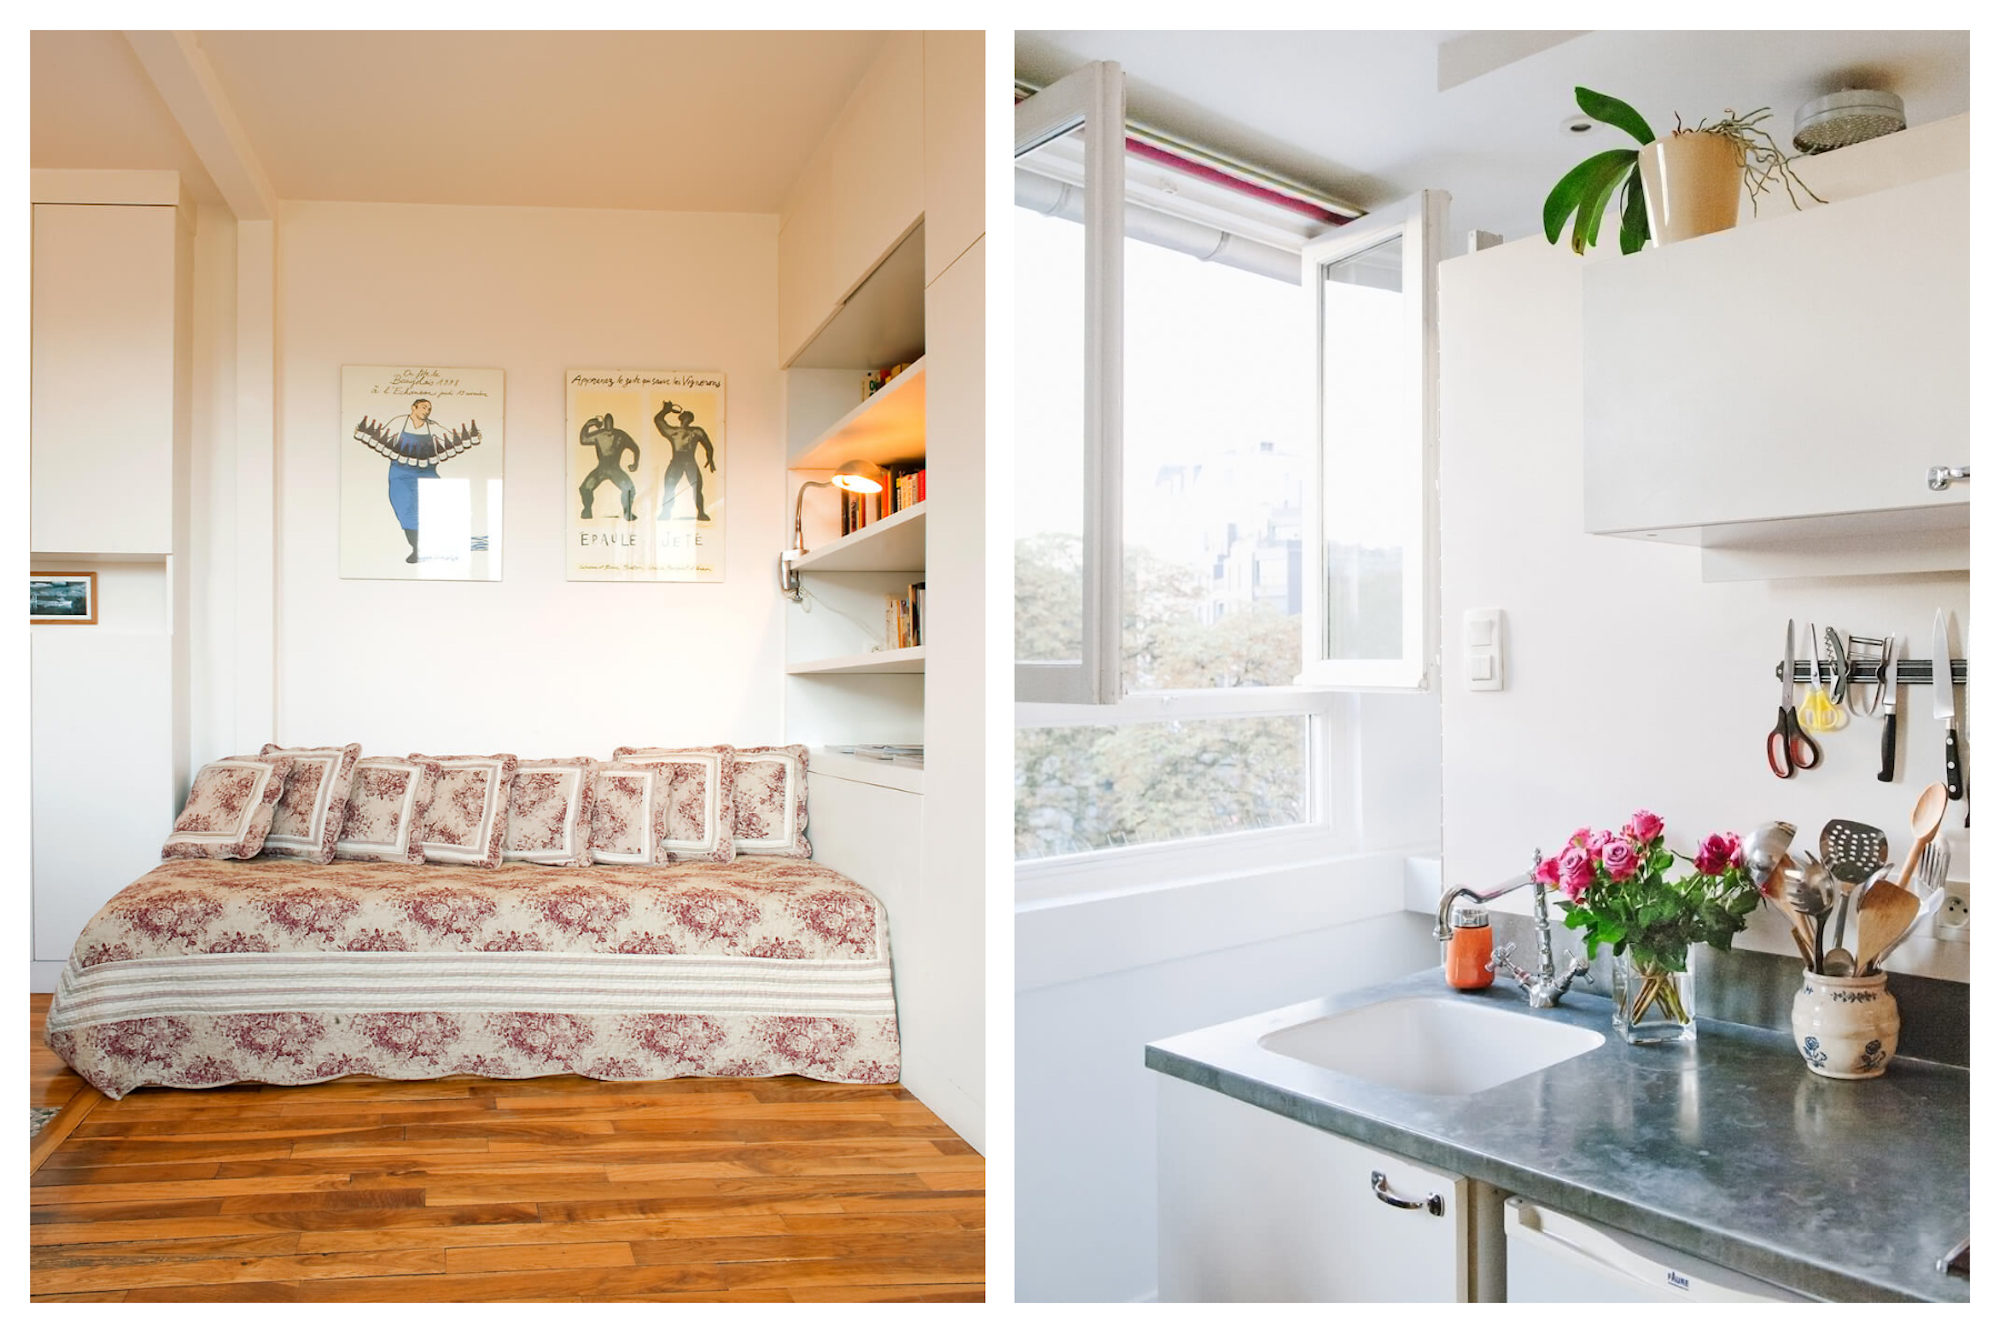 A studio for rent in Paris in Montmartre with a comfy fold-out sofa bed (left). The open window of a kitchen in a rental apartment in Paris (right).